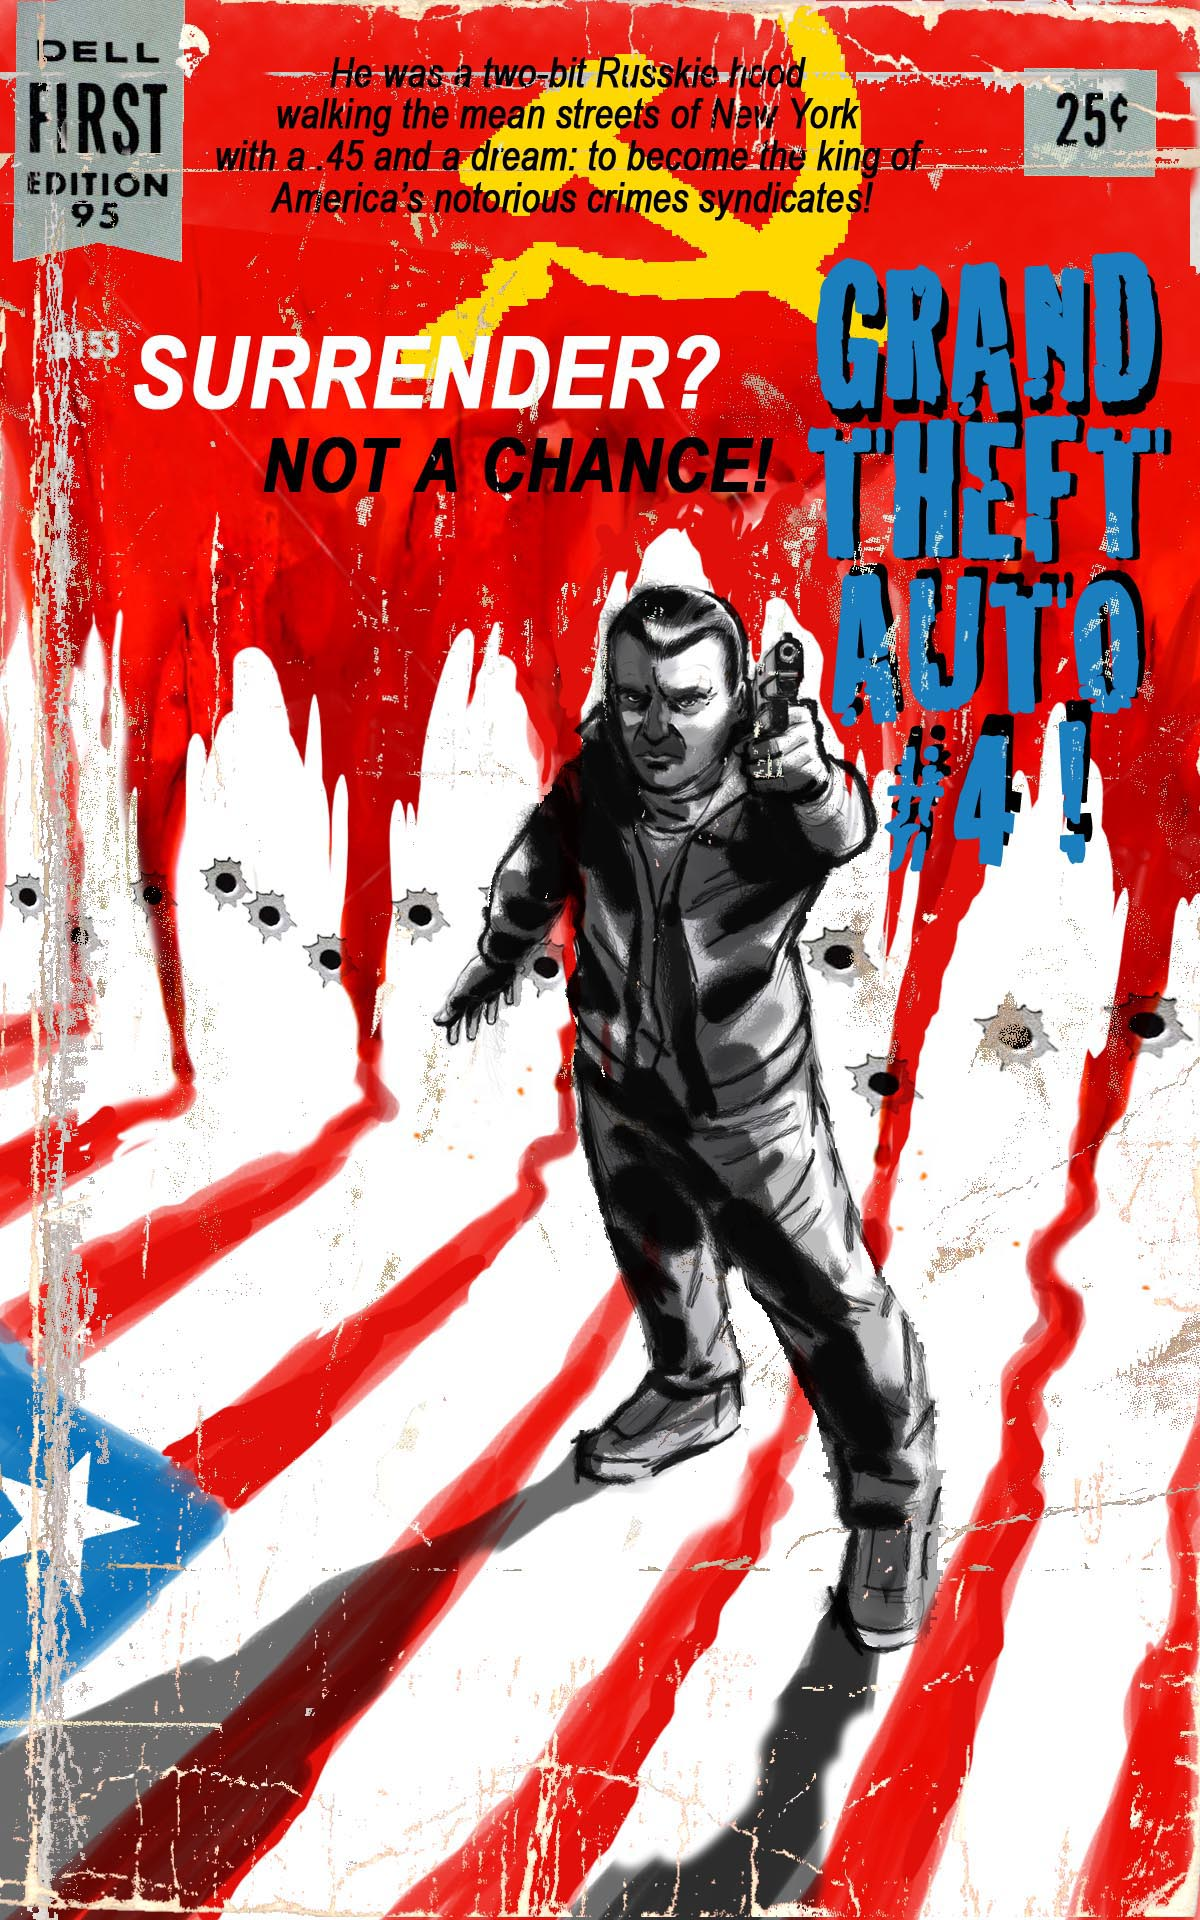 IF.Surrender.cvr